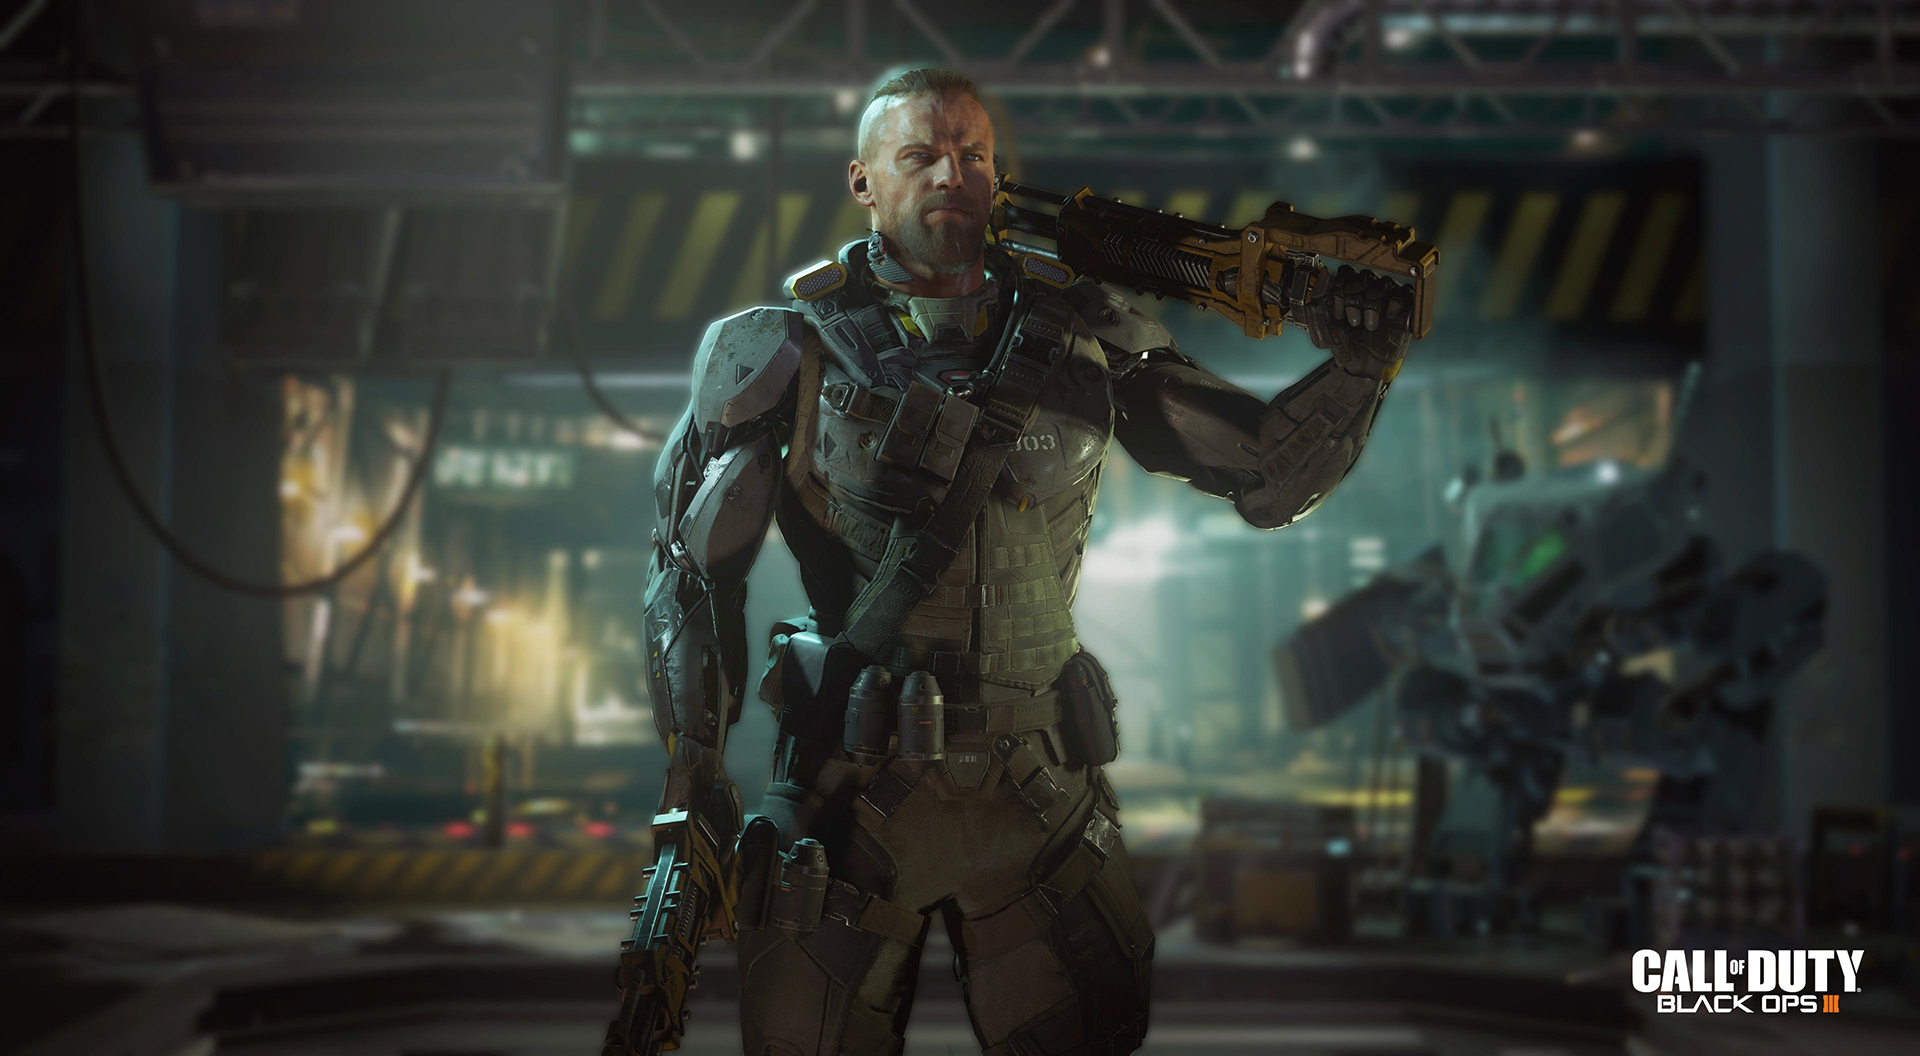 Call Of Duty: Black Ops 3 Screenshots Introduce Super-Soldiers And Robots  #32761